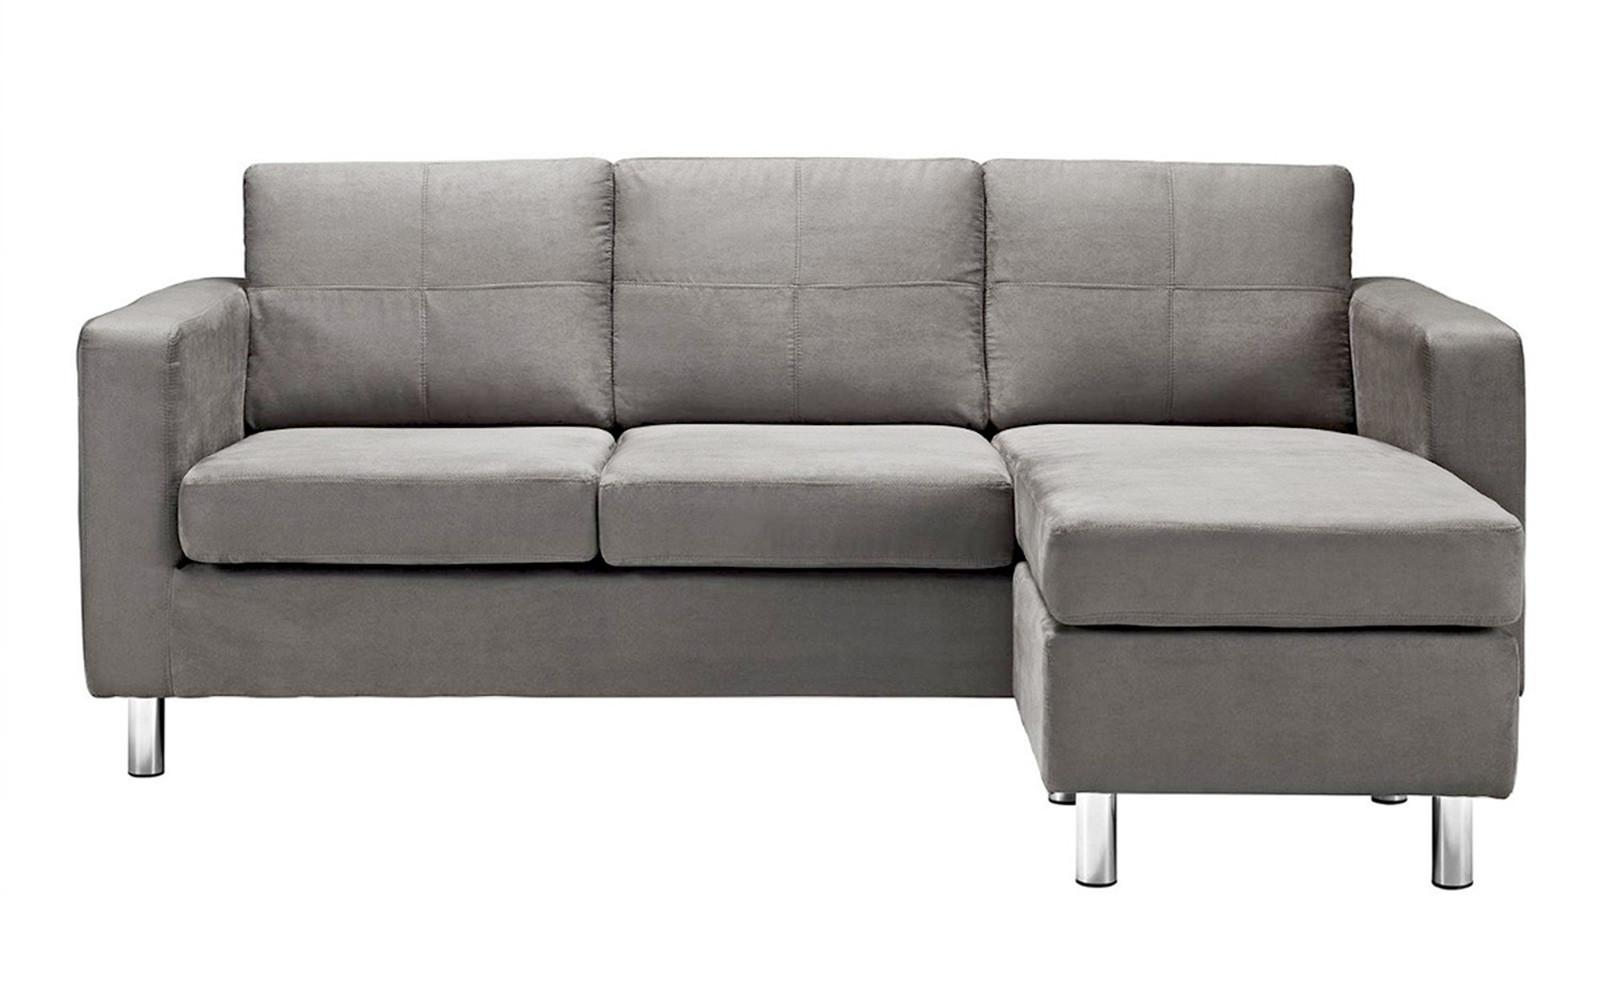 Modern Reversible Small Space Configurable Microfiber Sectional Intended For Modern Sectional Sofas For Small Spaces (Image 11 of 20)